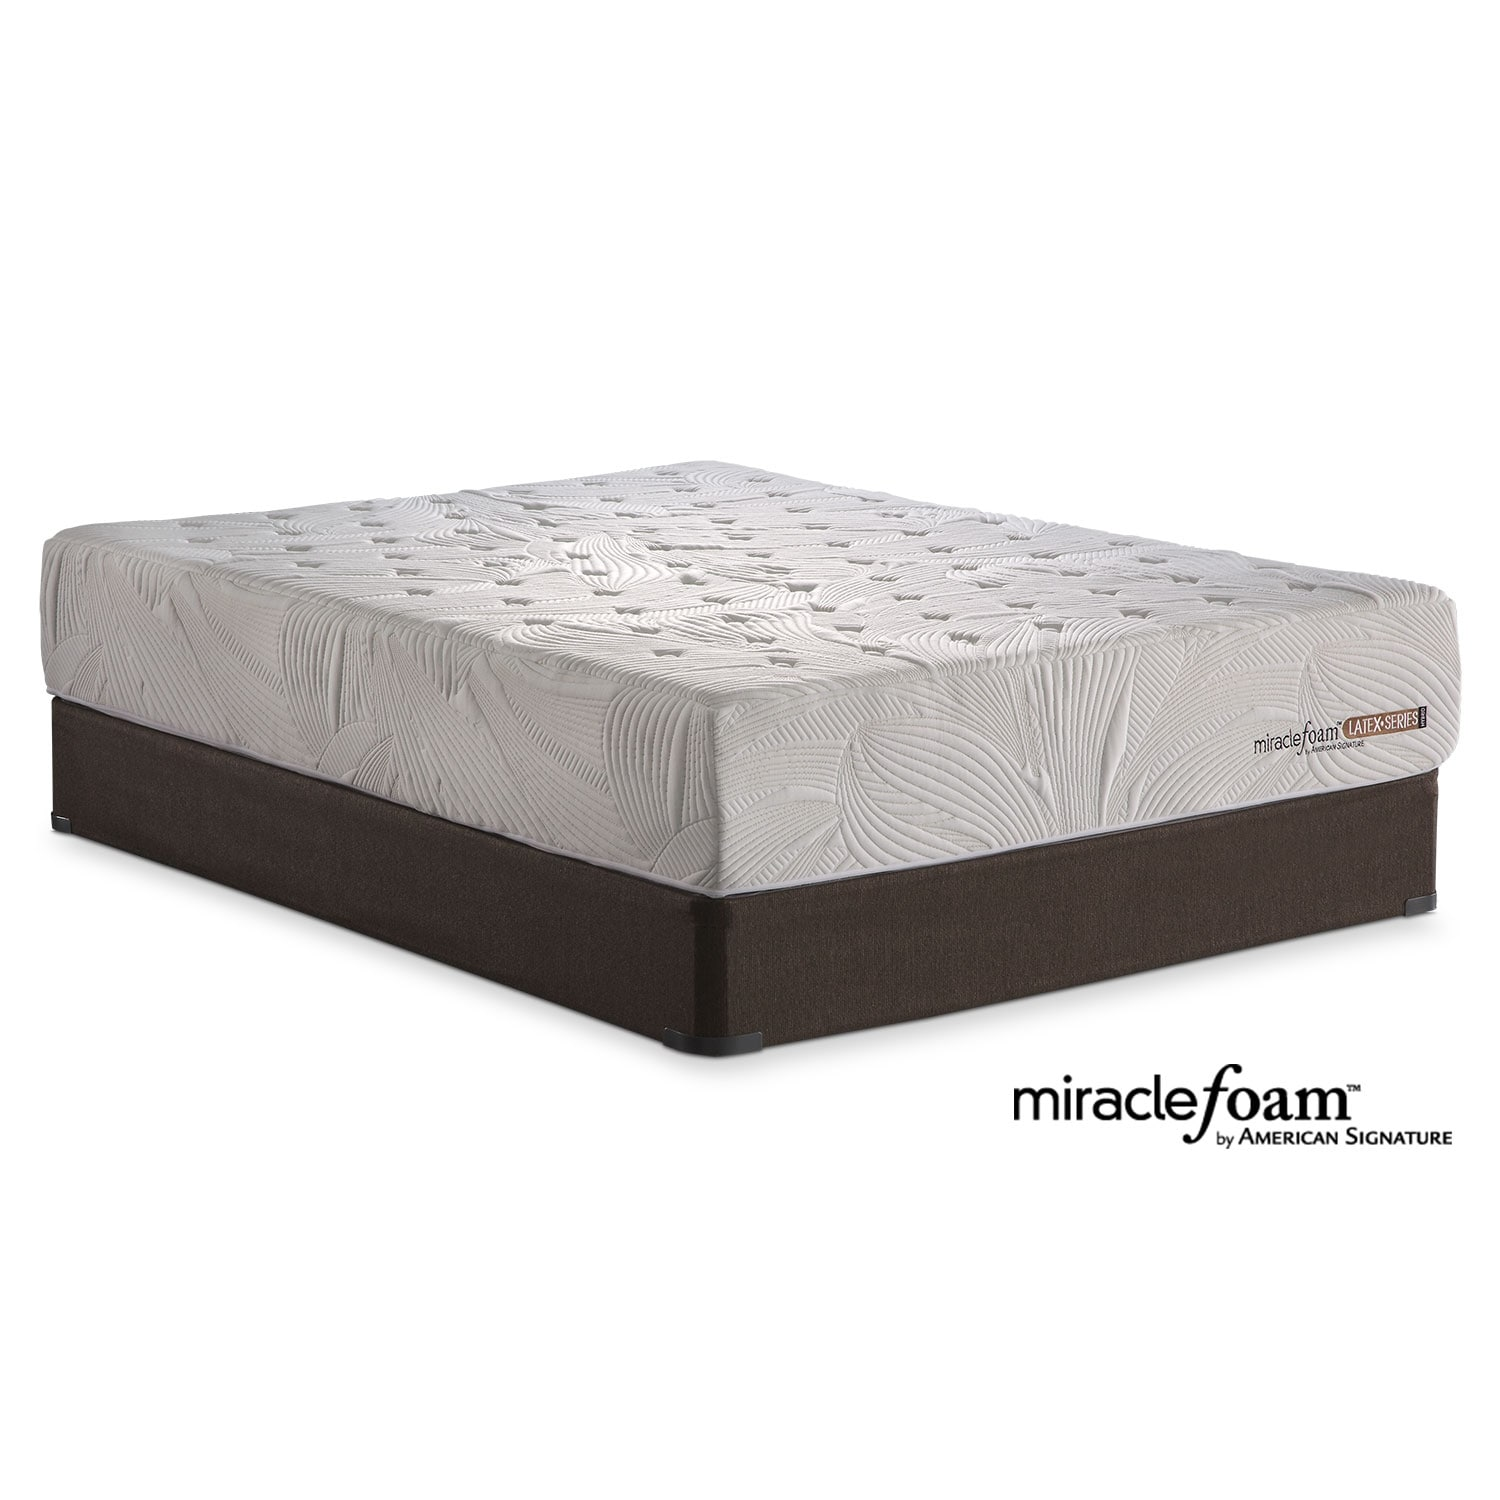 Mattresses and Bedding - Bliss King Mattress/Split Foundation Set